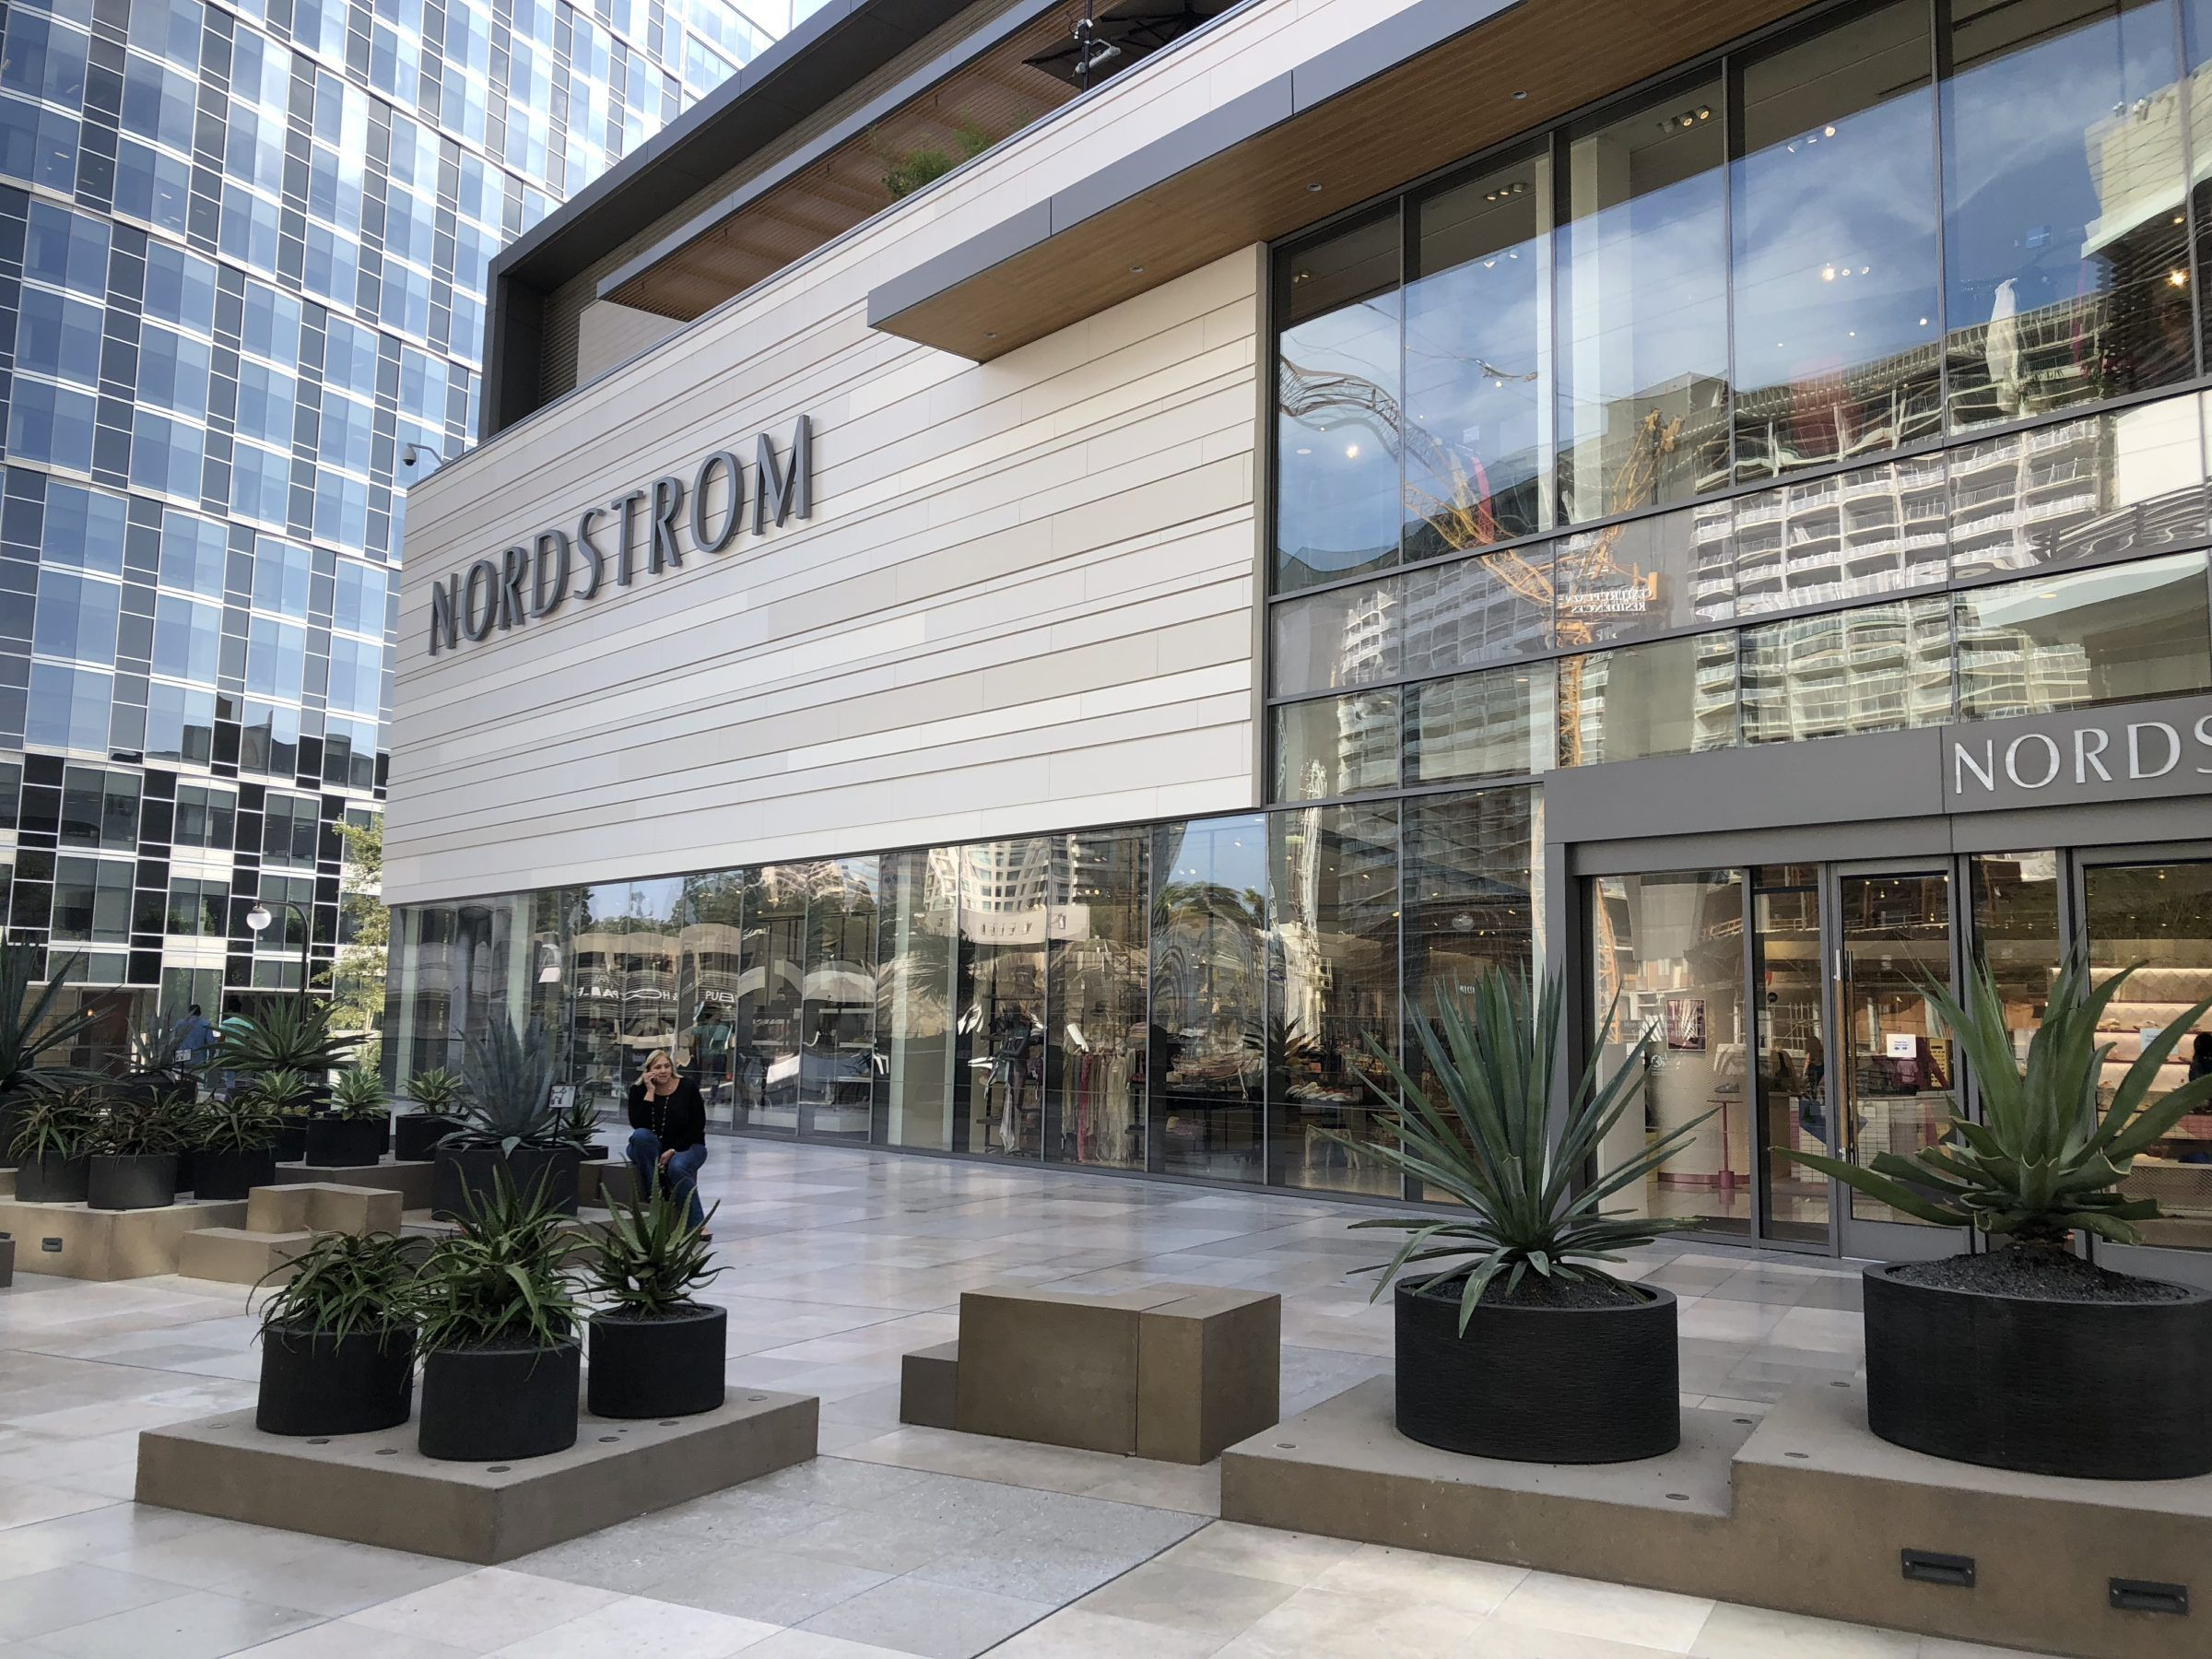 All The Best Shopping Malls In Los Angeles Indoor Out Momsla Shopping Mall Design Shopping Mall Architecture Mall Design